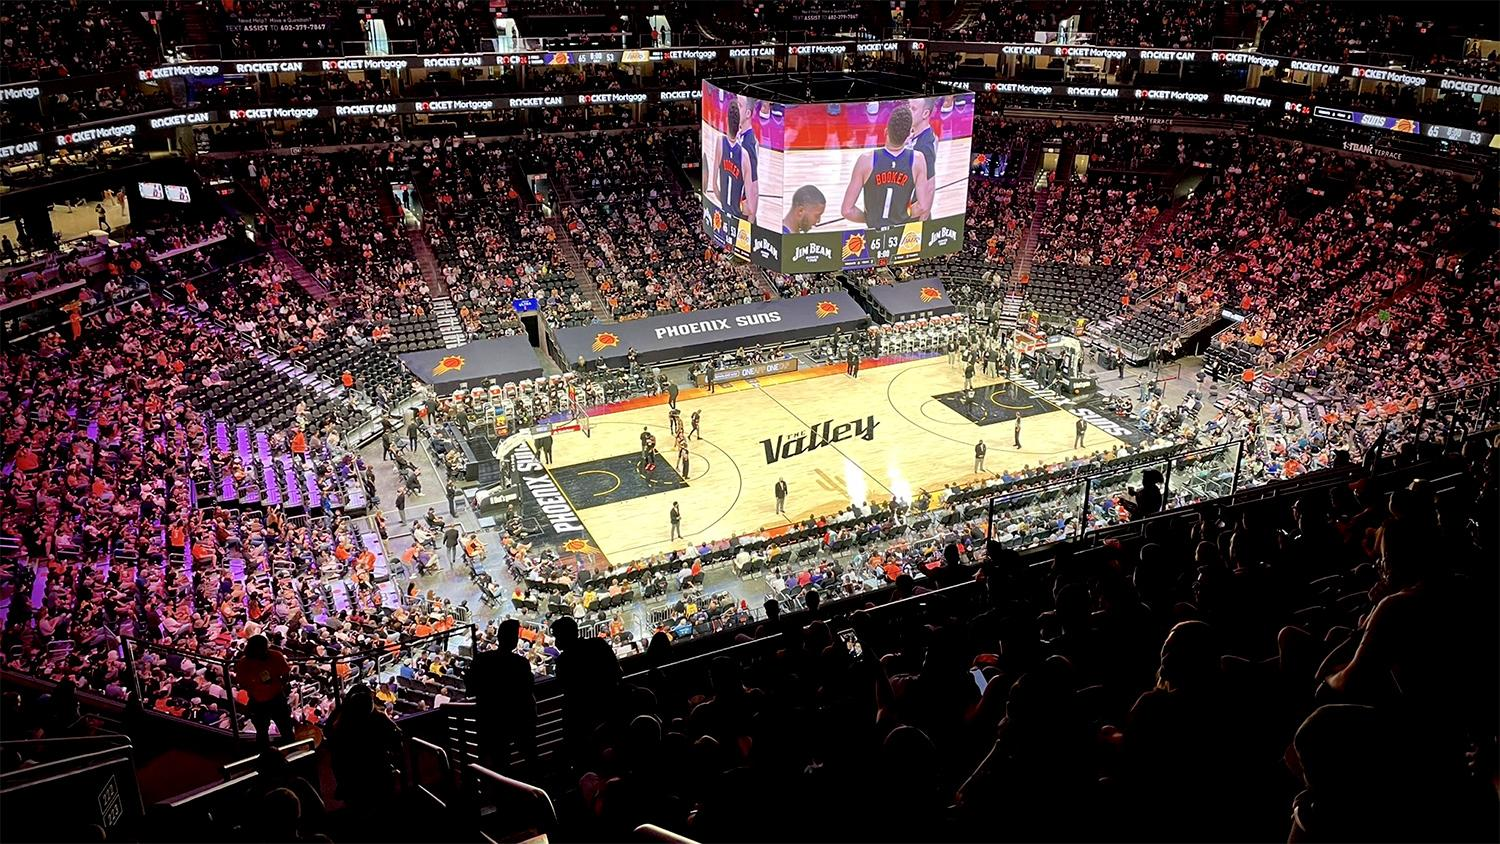 Phoenix Suns Arena The Valley court